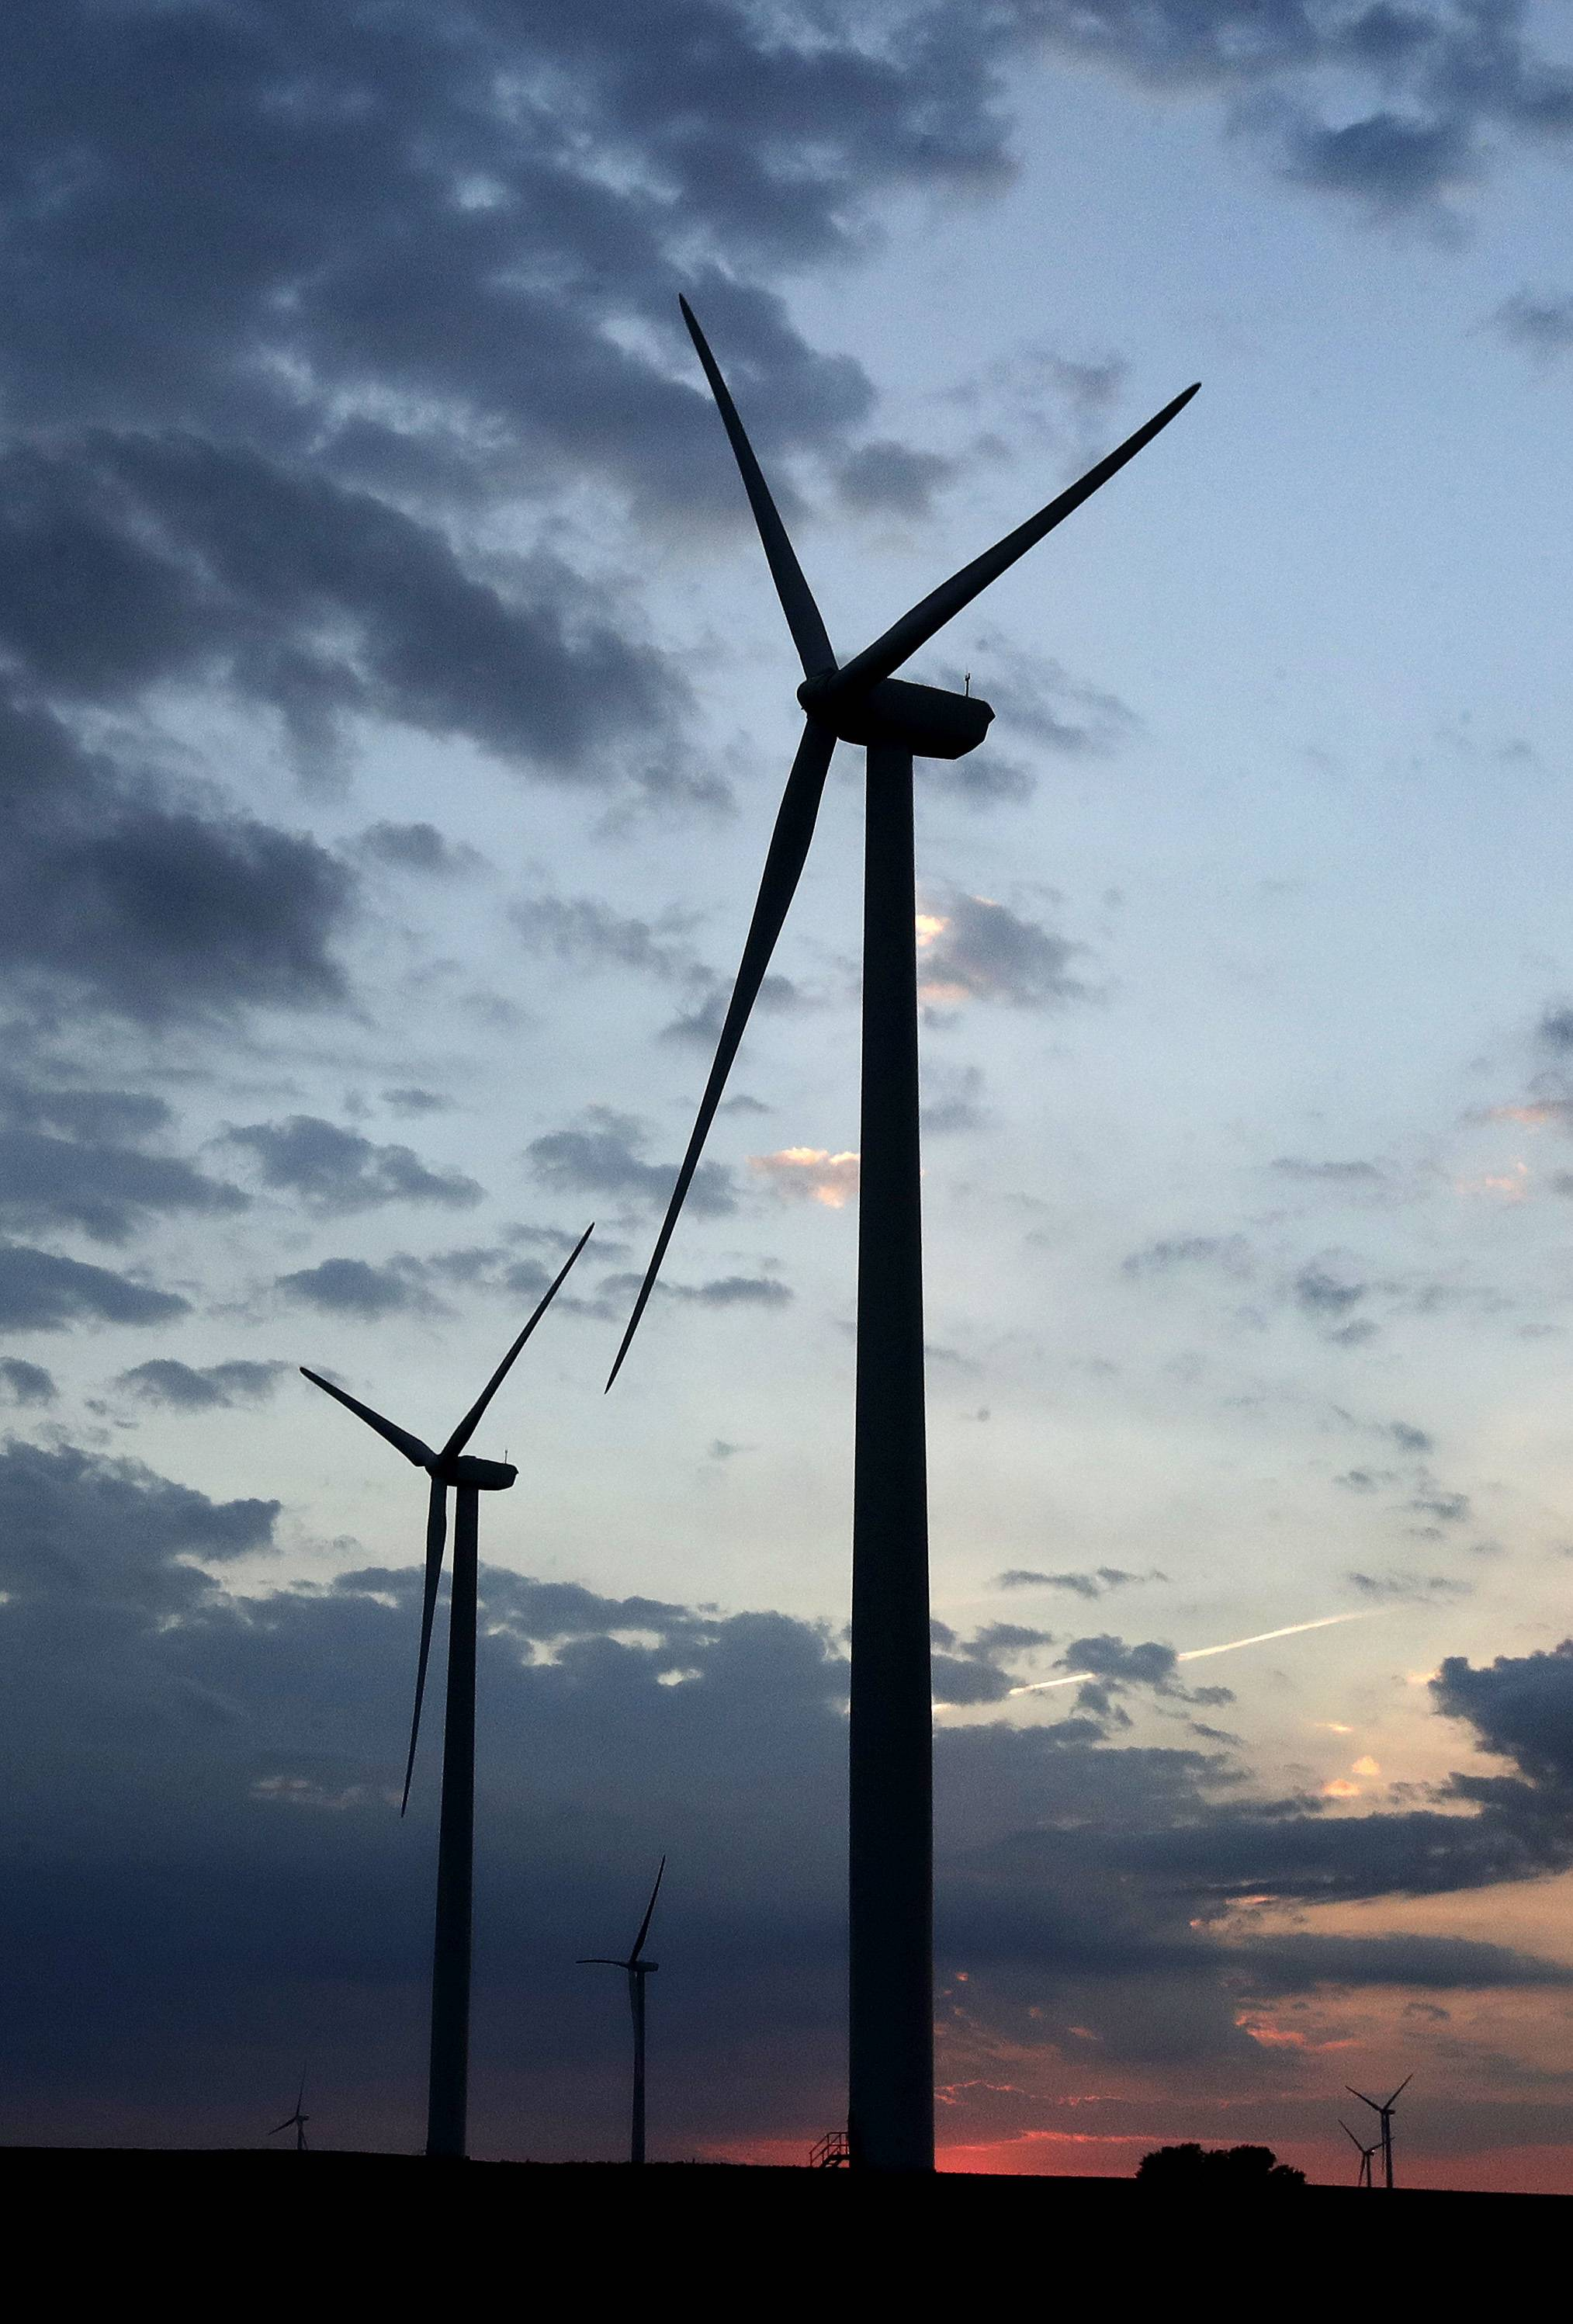 Illinois legislators likely will not take action on renewable energy proposals before they adjourn May 31.